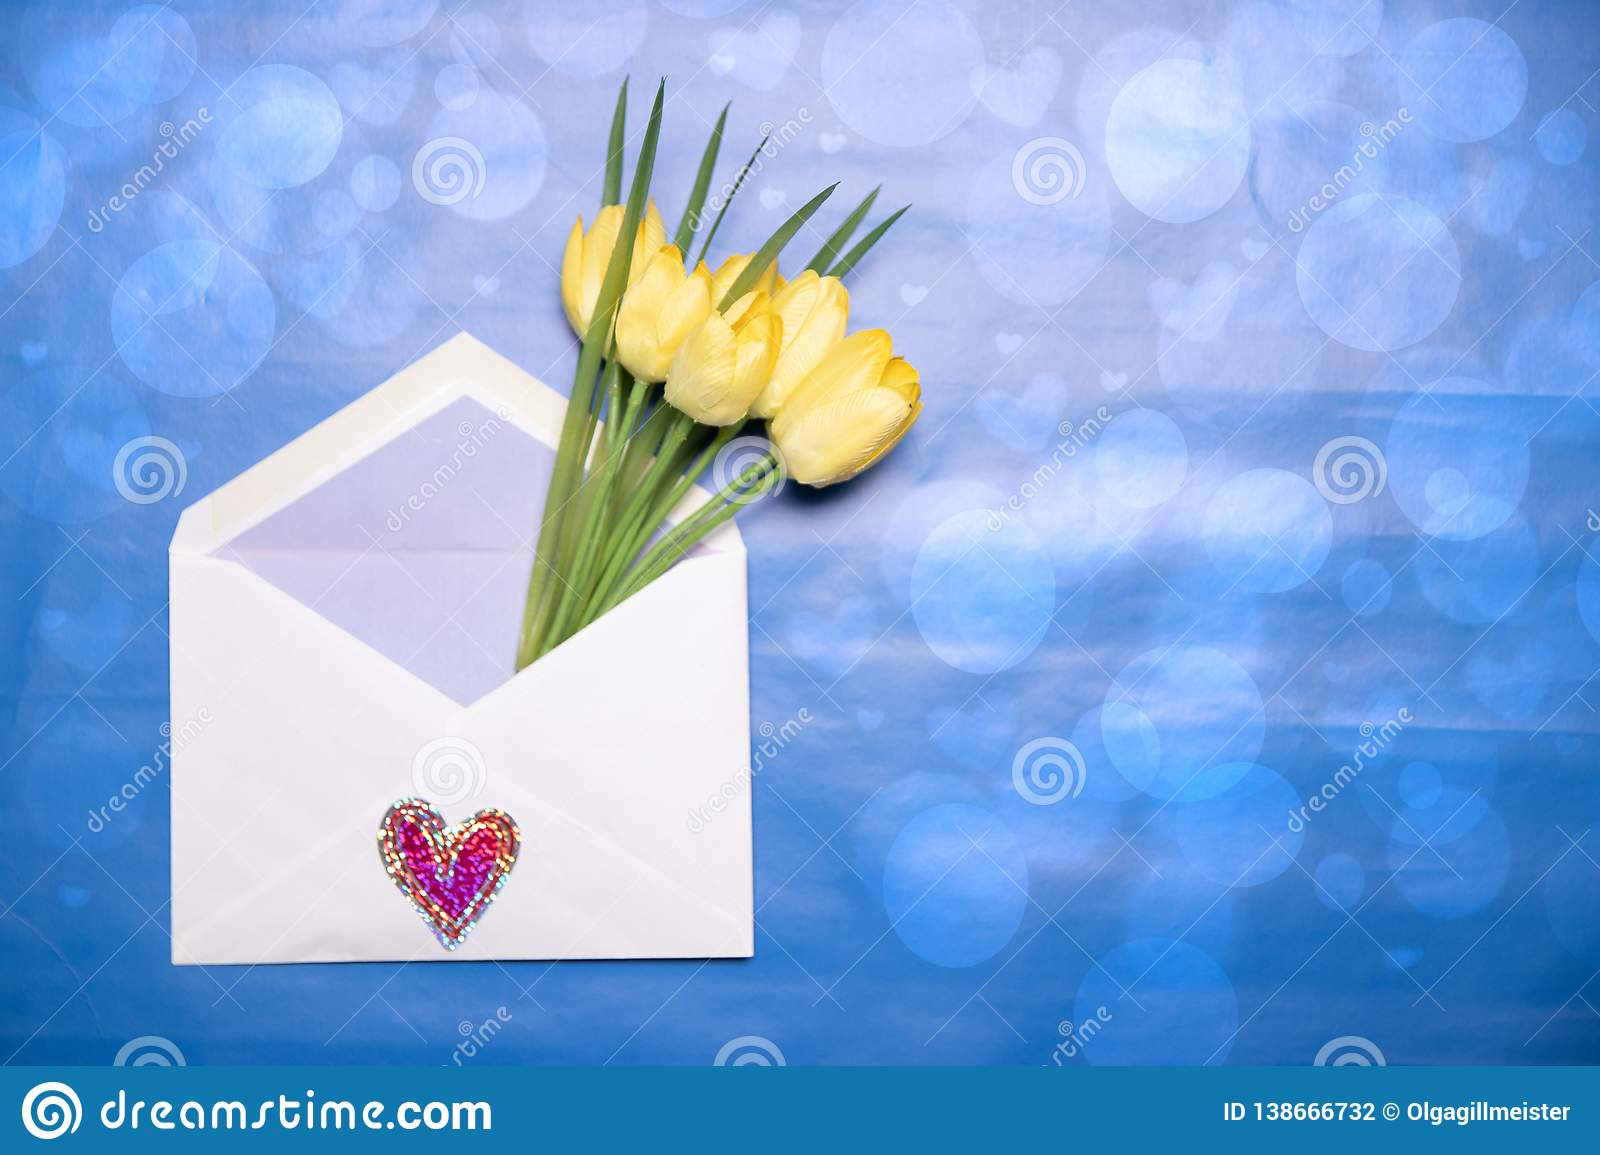 Happy Valentine or Mothers Day background. Beautiful bouquet of yellow tulips in an open envelope with a hearts symbol lying on a